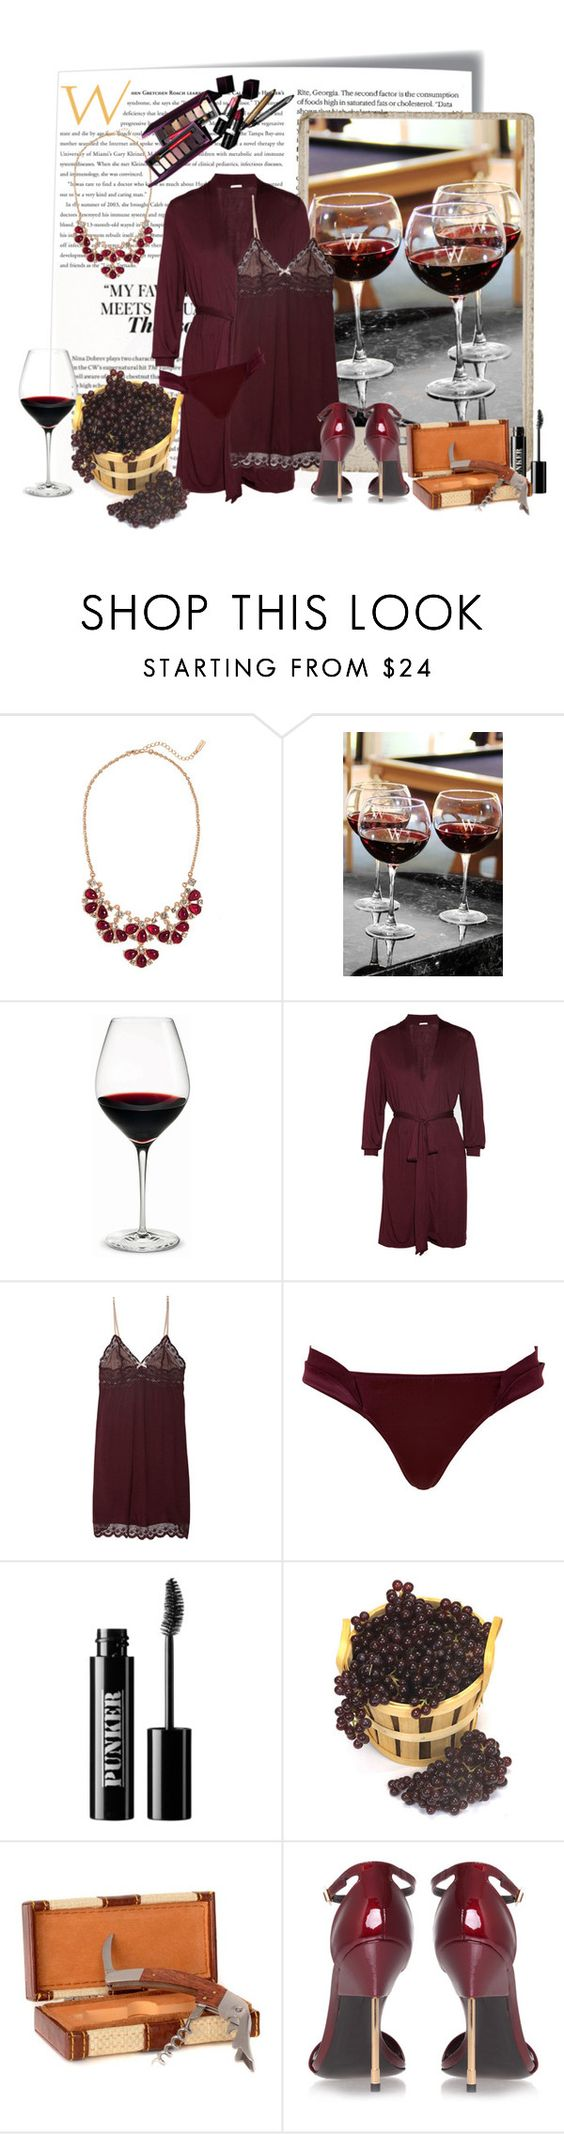 """Best Wine"" by theroyalcrime ❤ liked on Polyvore featuring Post-It, BaubleBar, Cathy's Concepts, Holmegaard, Eberjey, La Perla, Ardency Inn and Kurt Geiger"